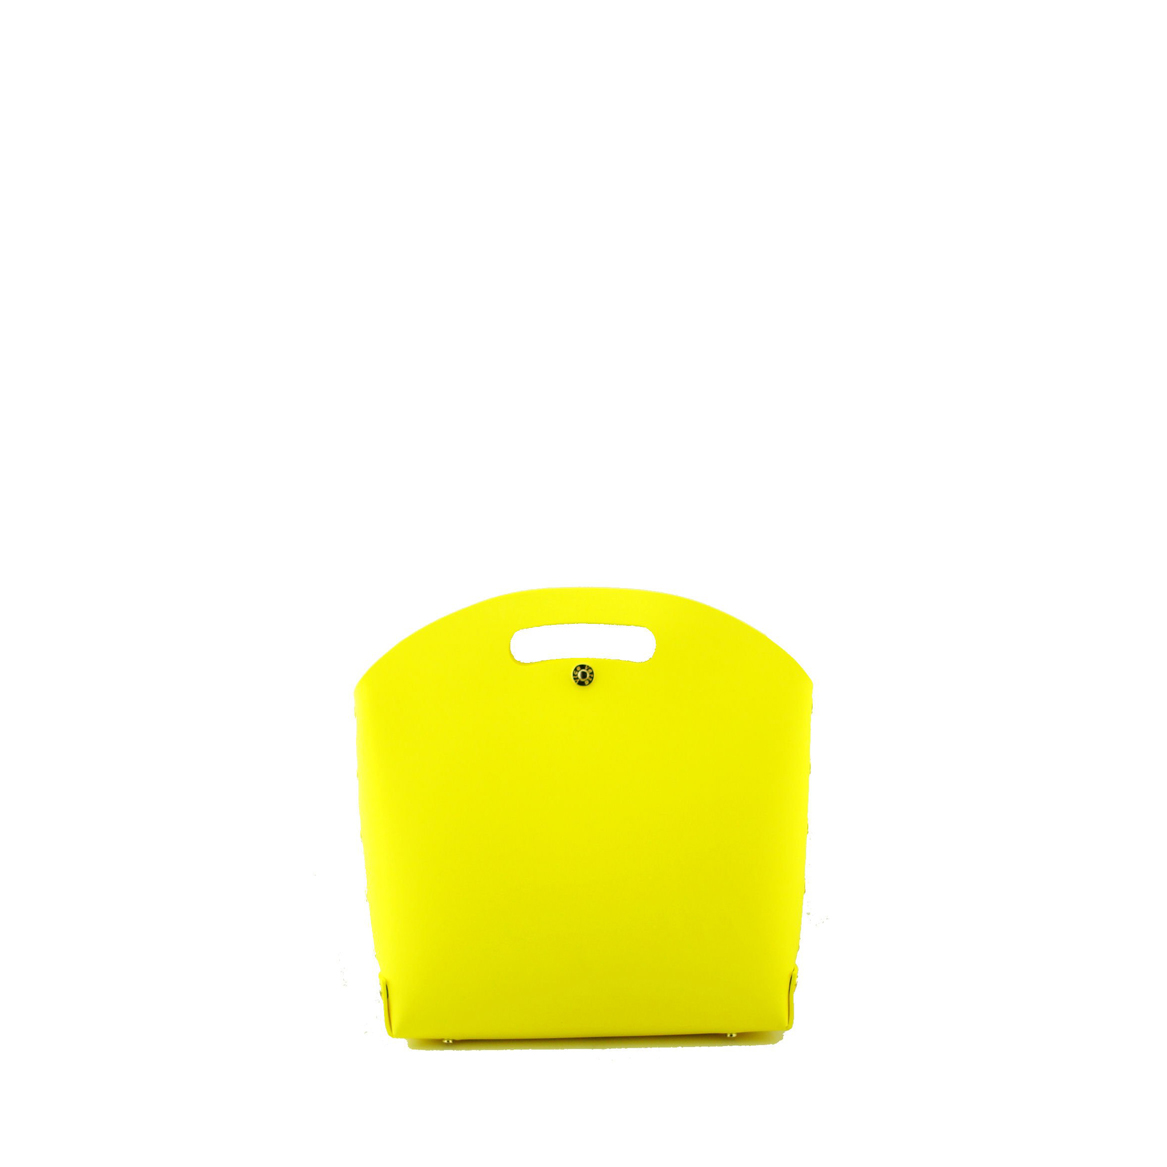 VICE VERSA YELLOW - 99409 YELLOW